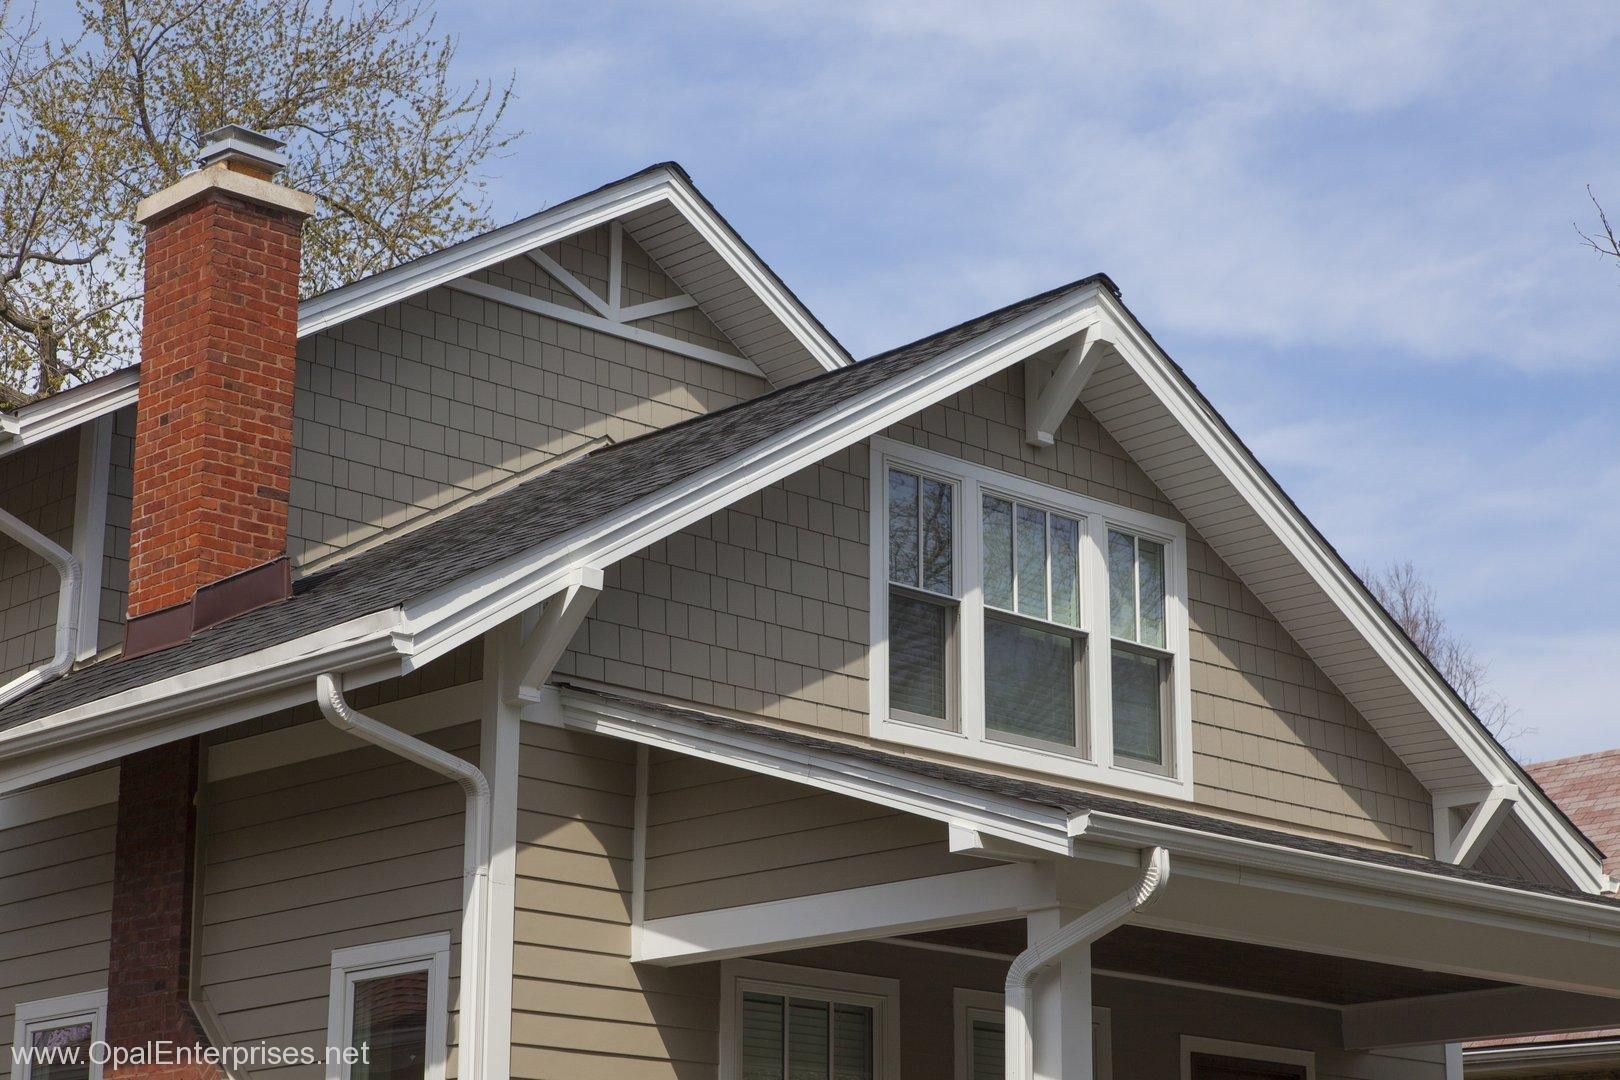 A Charming Upgrade Featuring James Hardie Siding In Monterey Taupe Shingle Accents With Images Exterior House Renovation Hardie Siding James Hardie Siding